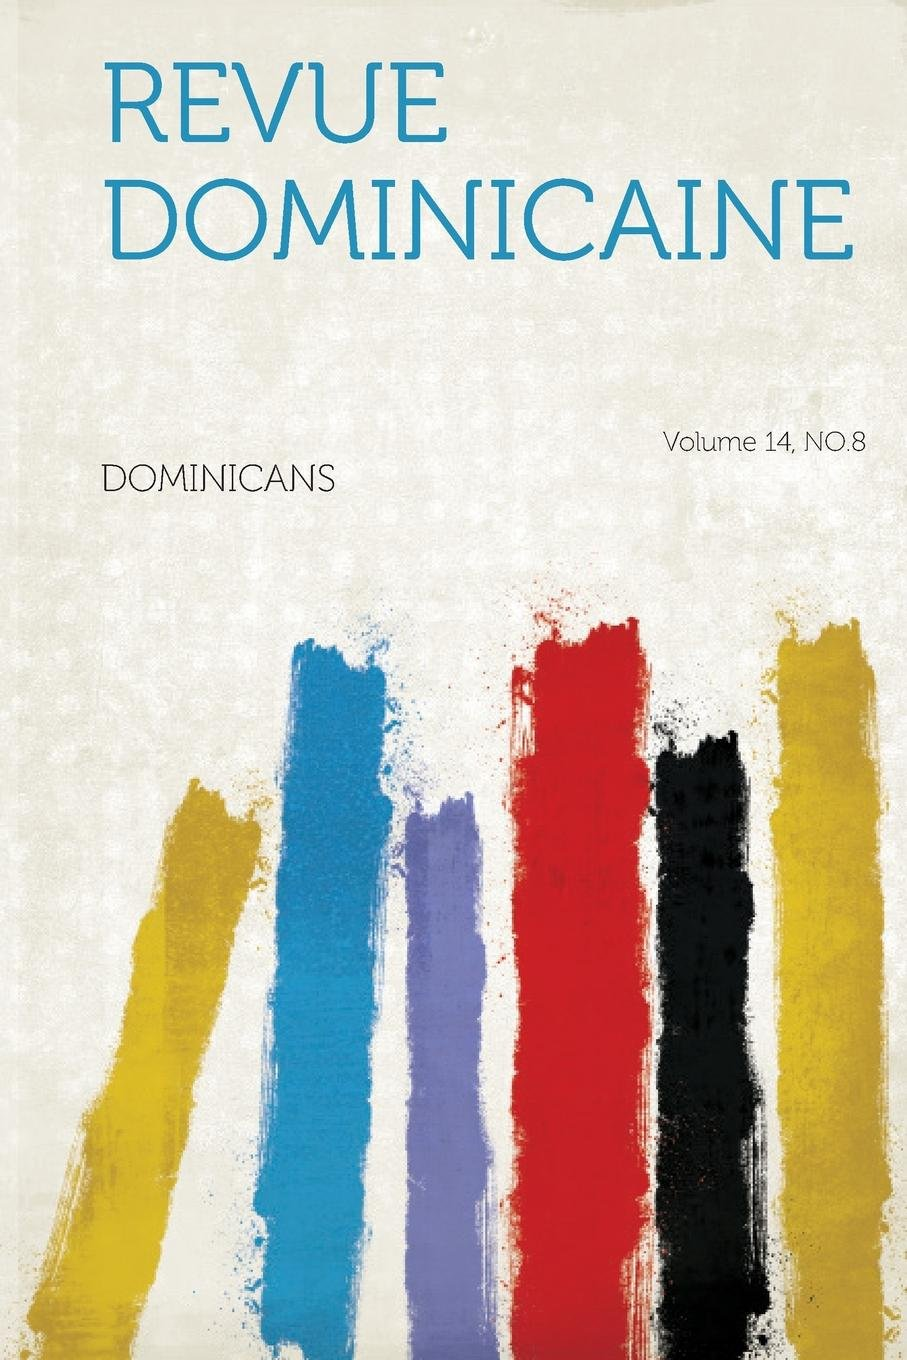 Download Revue Dominicaine Volume 14, No.8 (French Edition) ebook